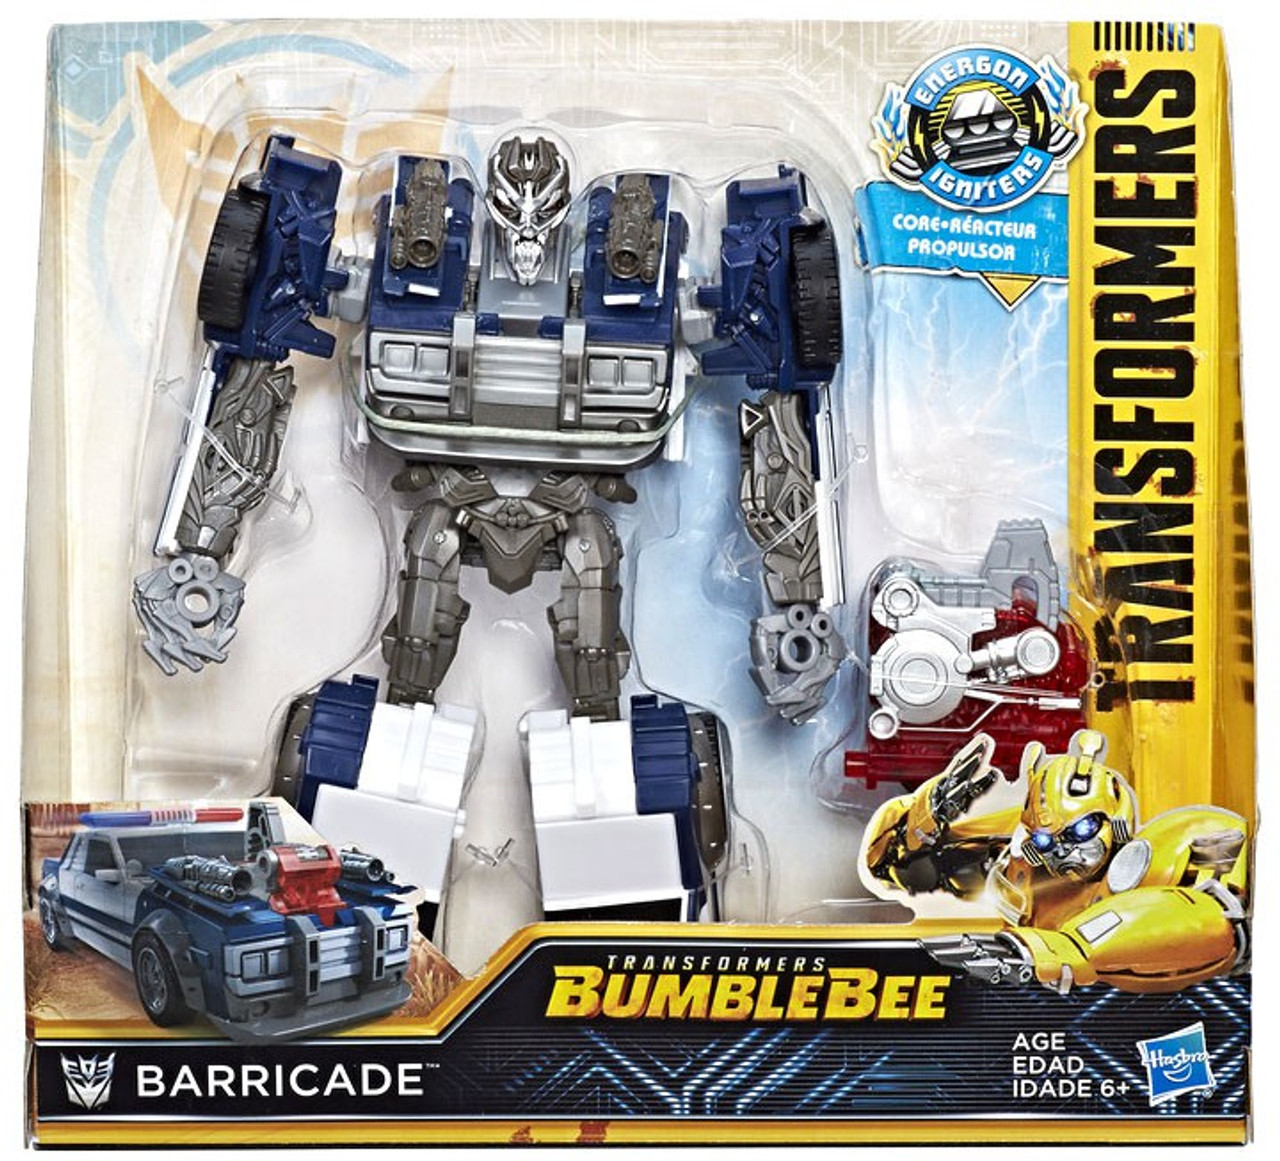 Transformers Bumblebee Movie Energon Igniters Nitro Barricade Action